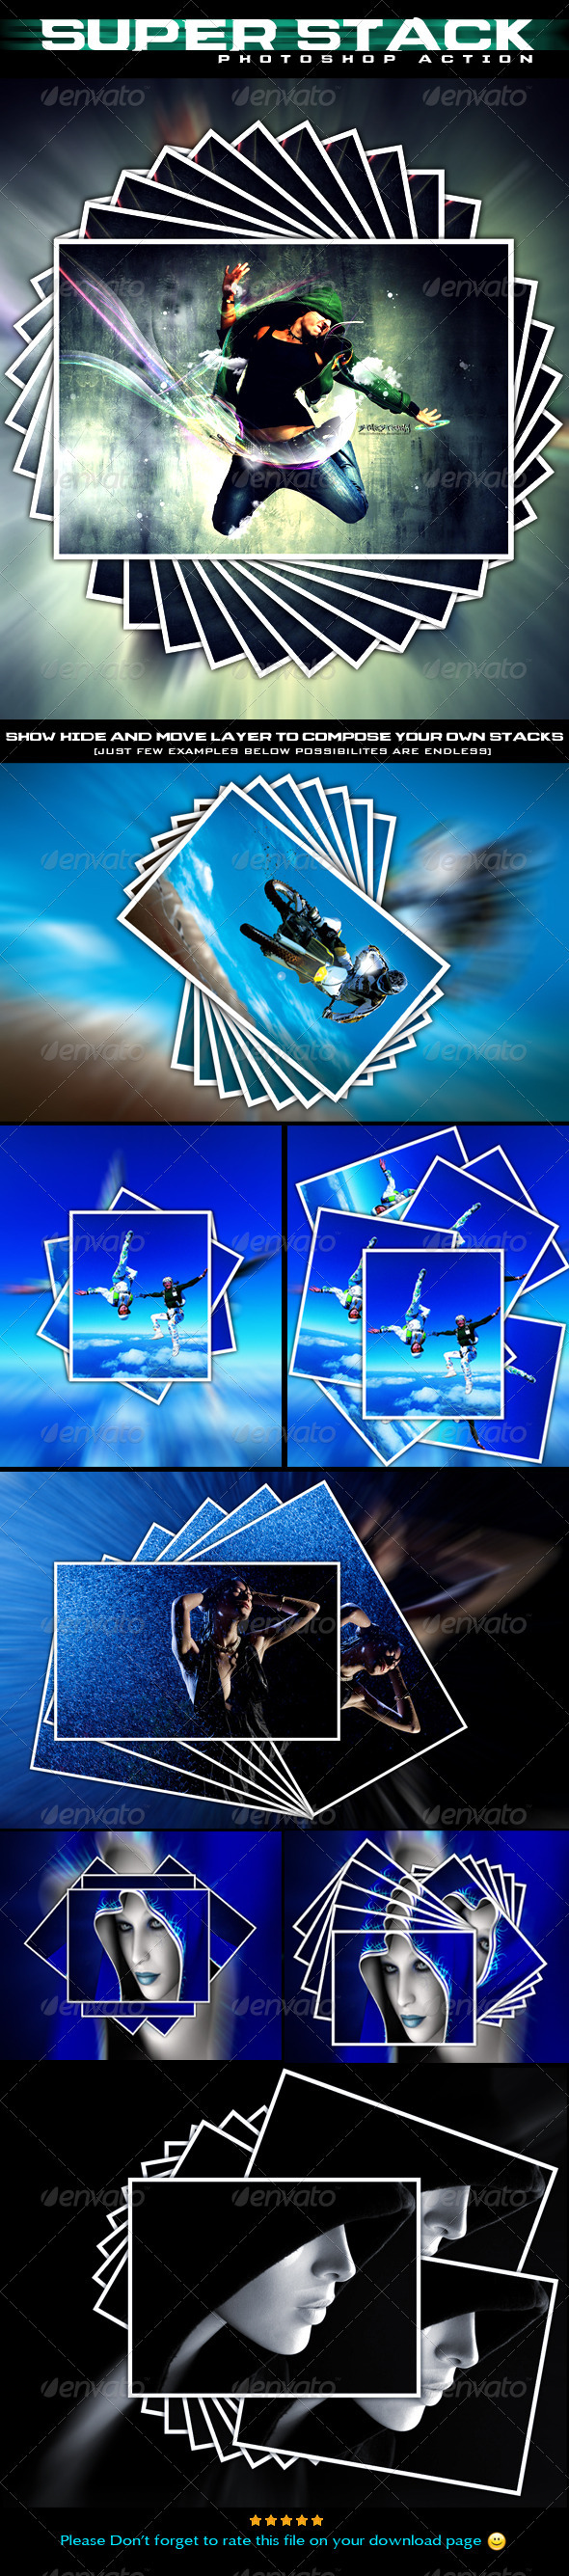 GraphicRiver Super Stack Photoshop Action 1179286